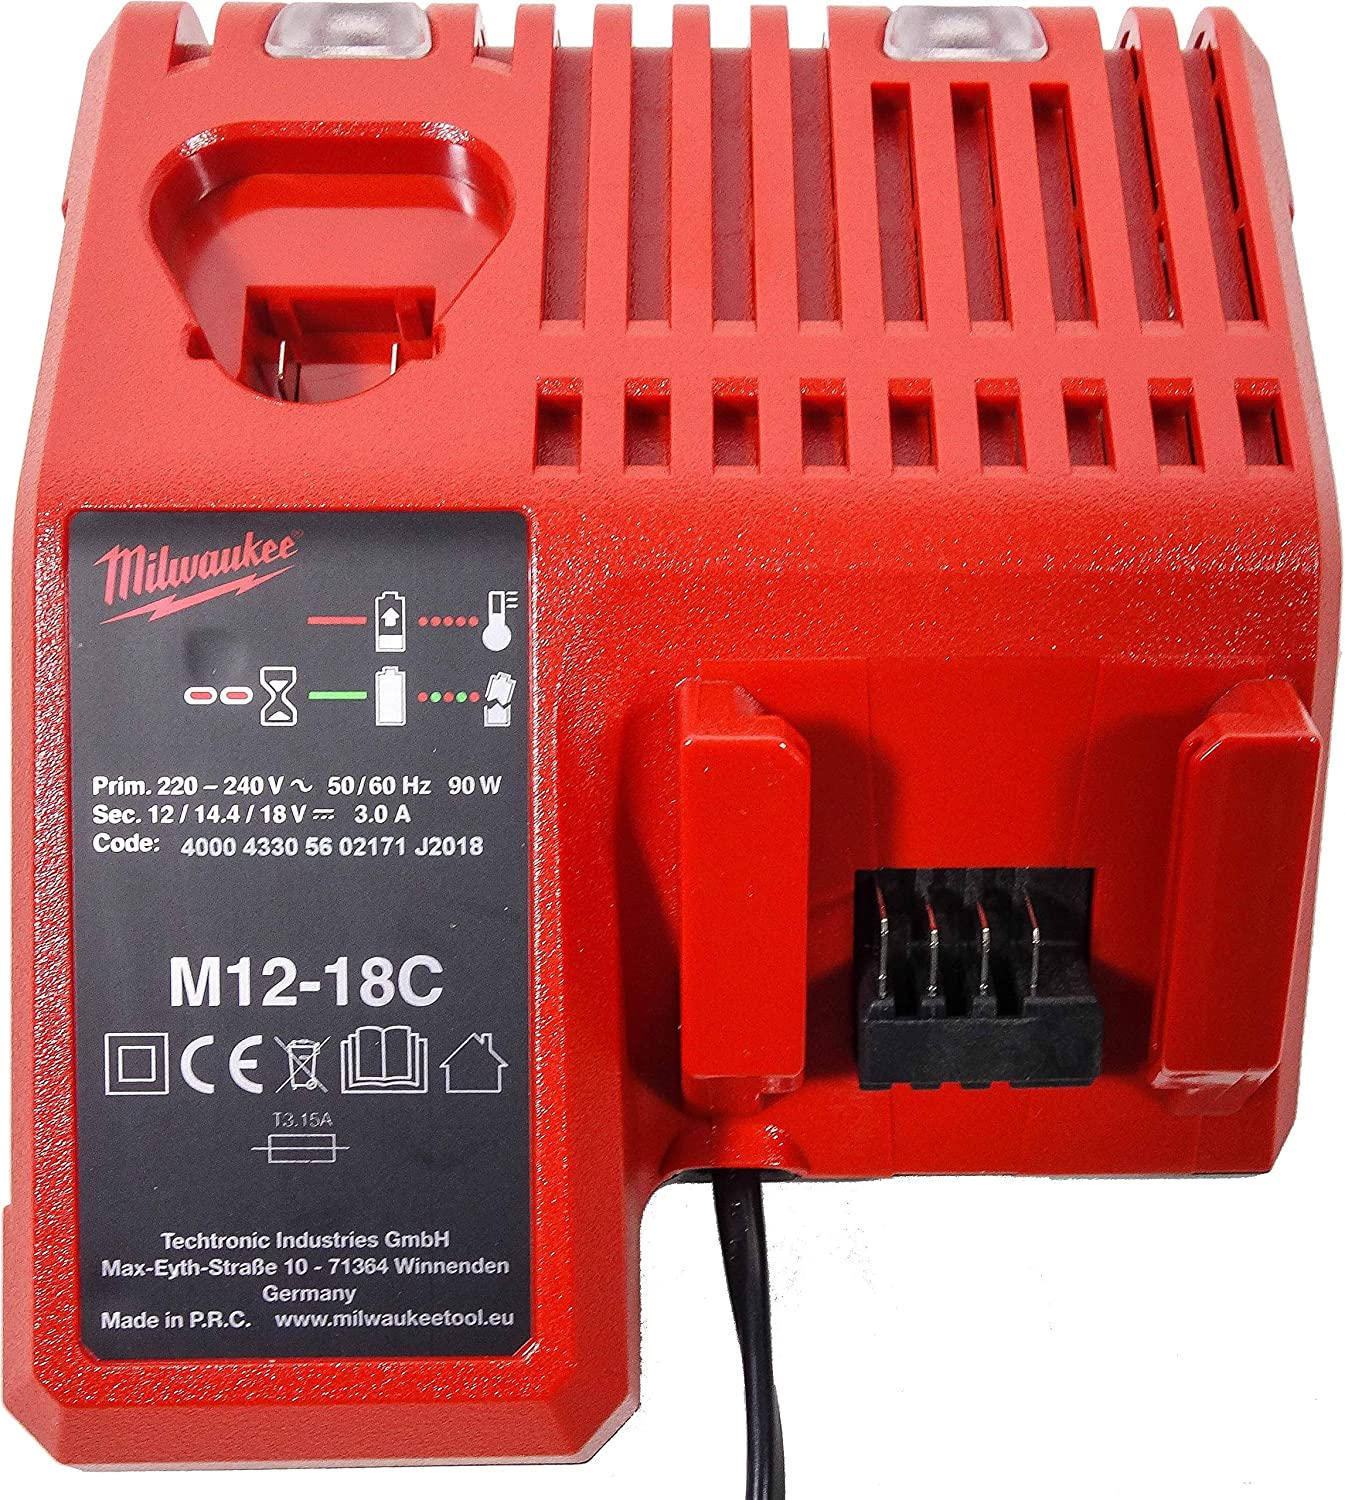 M12-M18//12-18 V 3A 220 V Remplacement Milwaukee Chargeur pour Milwaukee 48-59-1812 48-59-1808 Outil